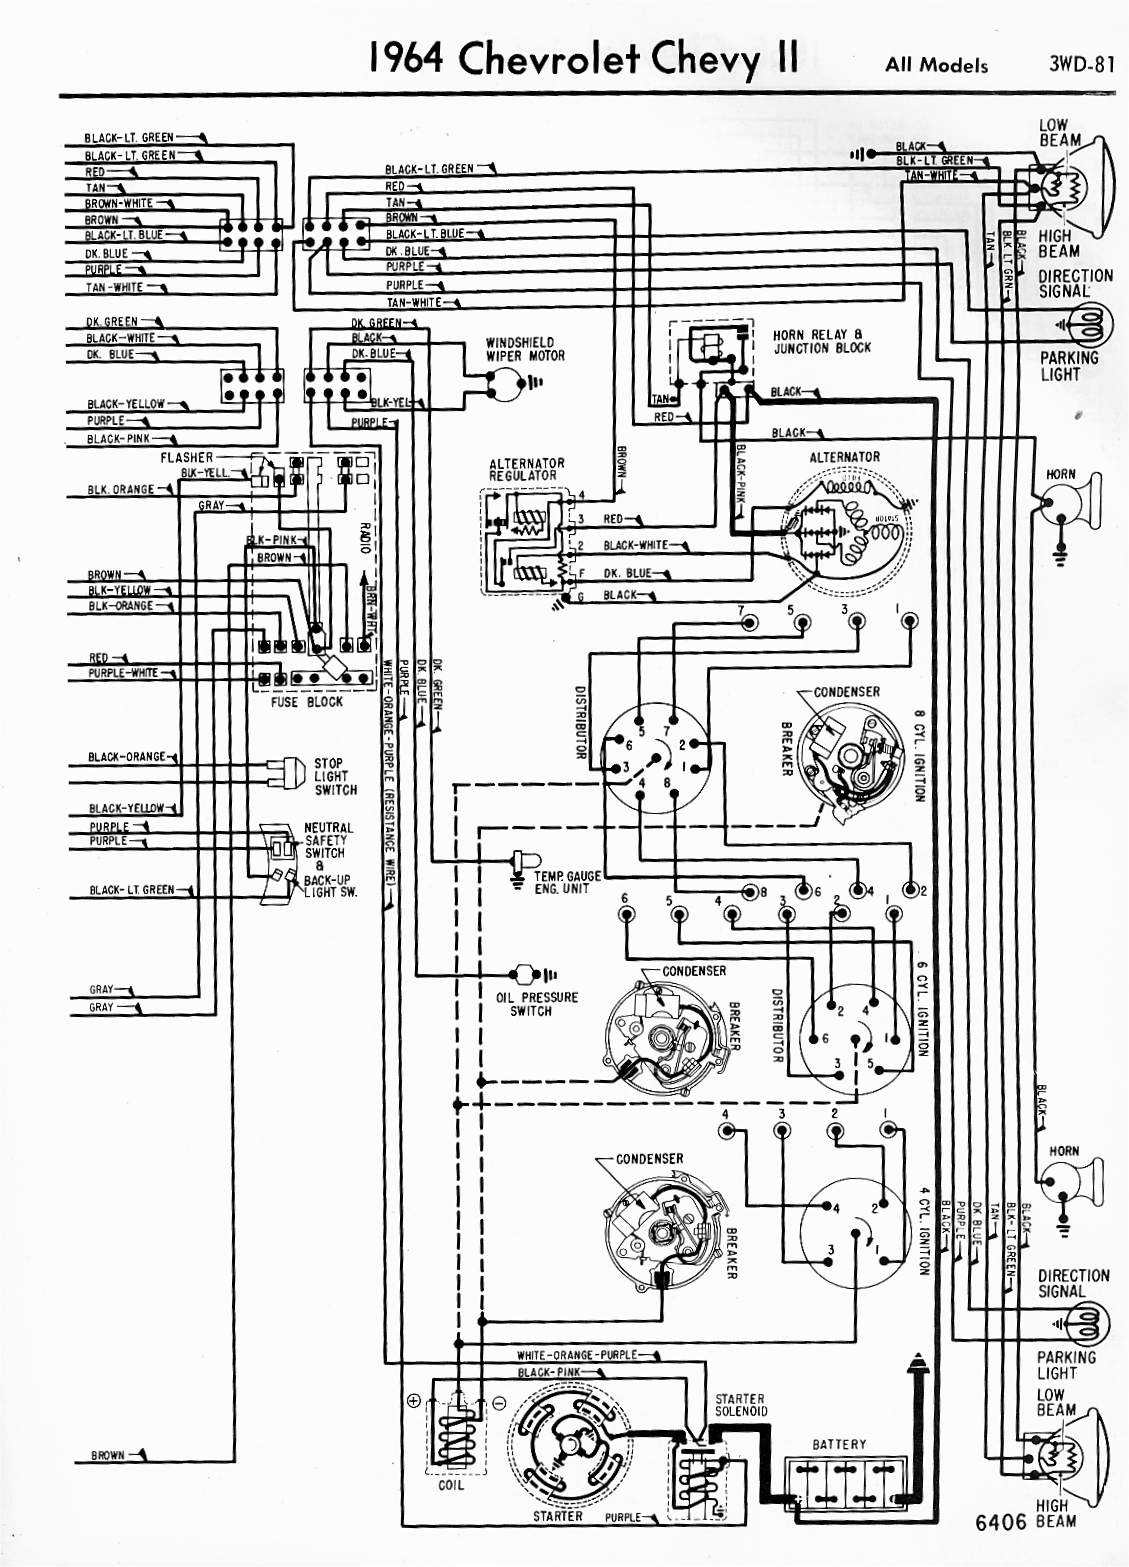 hight resolution of  impala wiring diagram b2network co cool 1964 chevy ii all models right